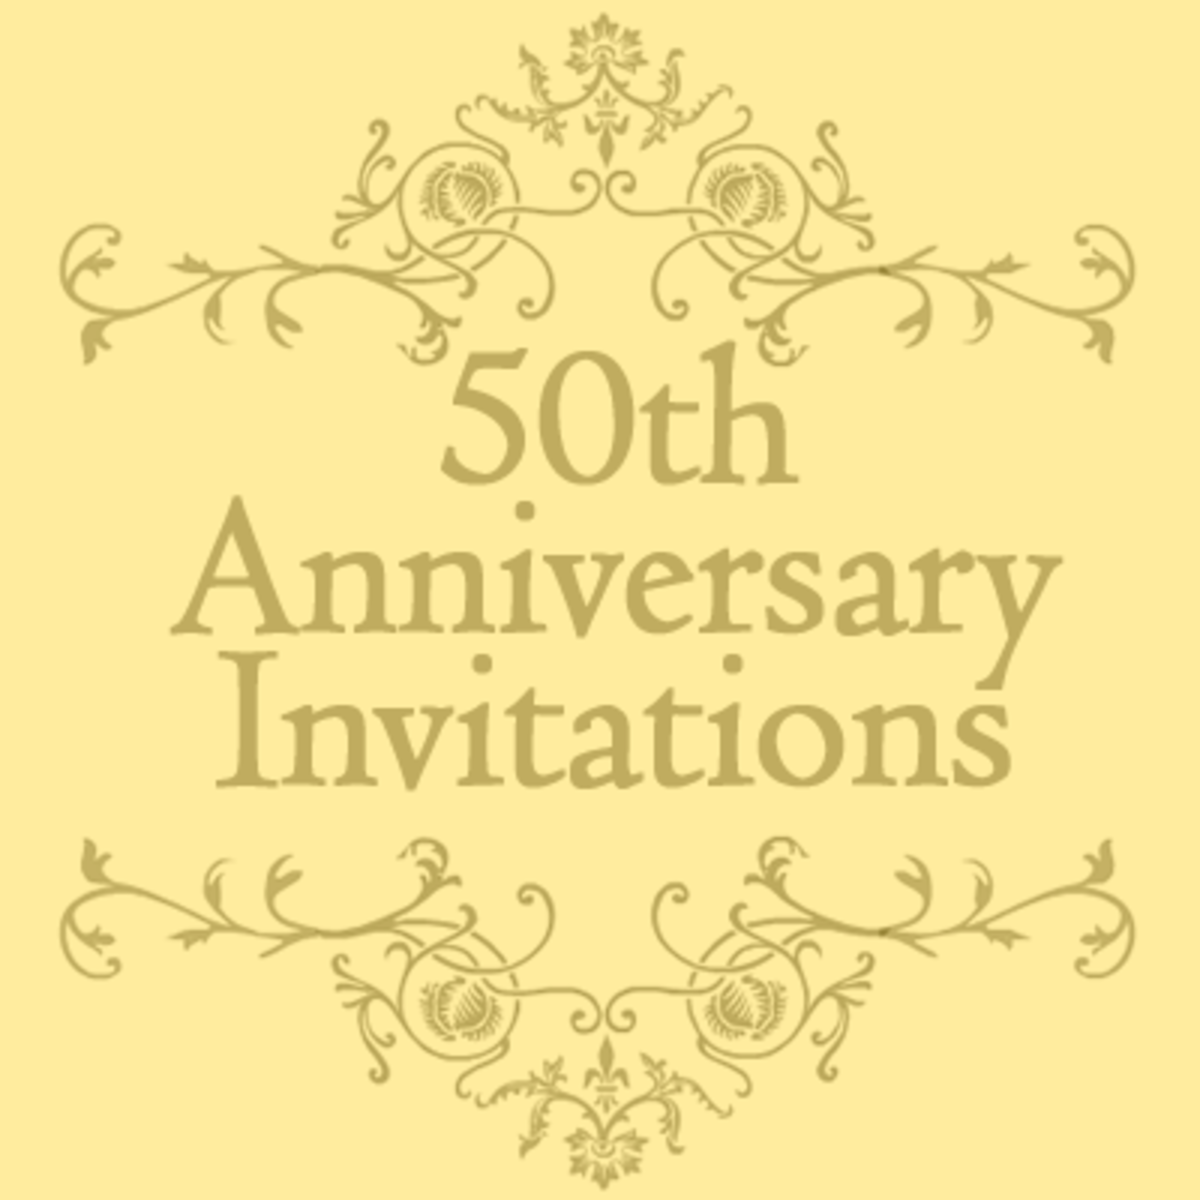 Free 50th wedding anniversary invitations templates hubpages if youre on the internet looking for free 50th anniversary invitations that means either you or someone you know has been married 50 years obviously stopboris Choice Image